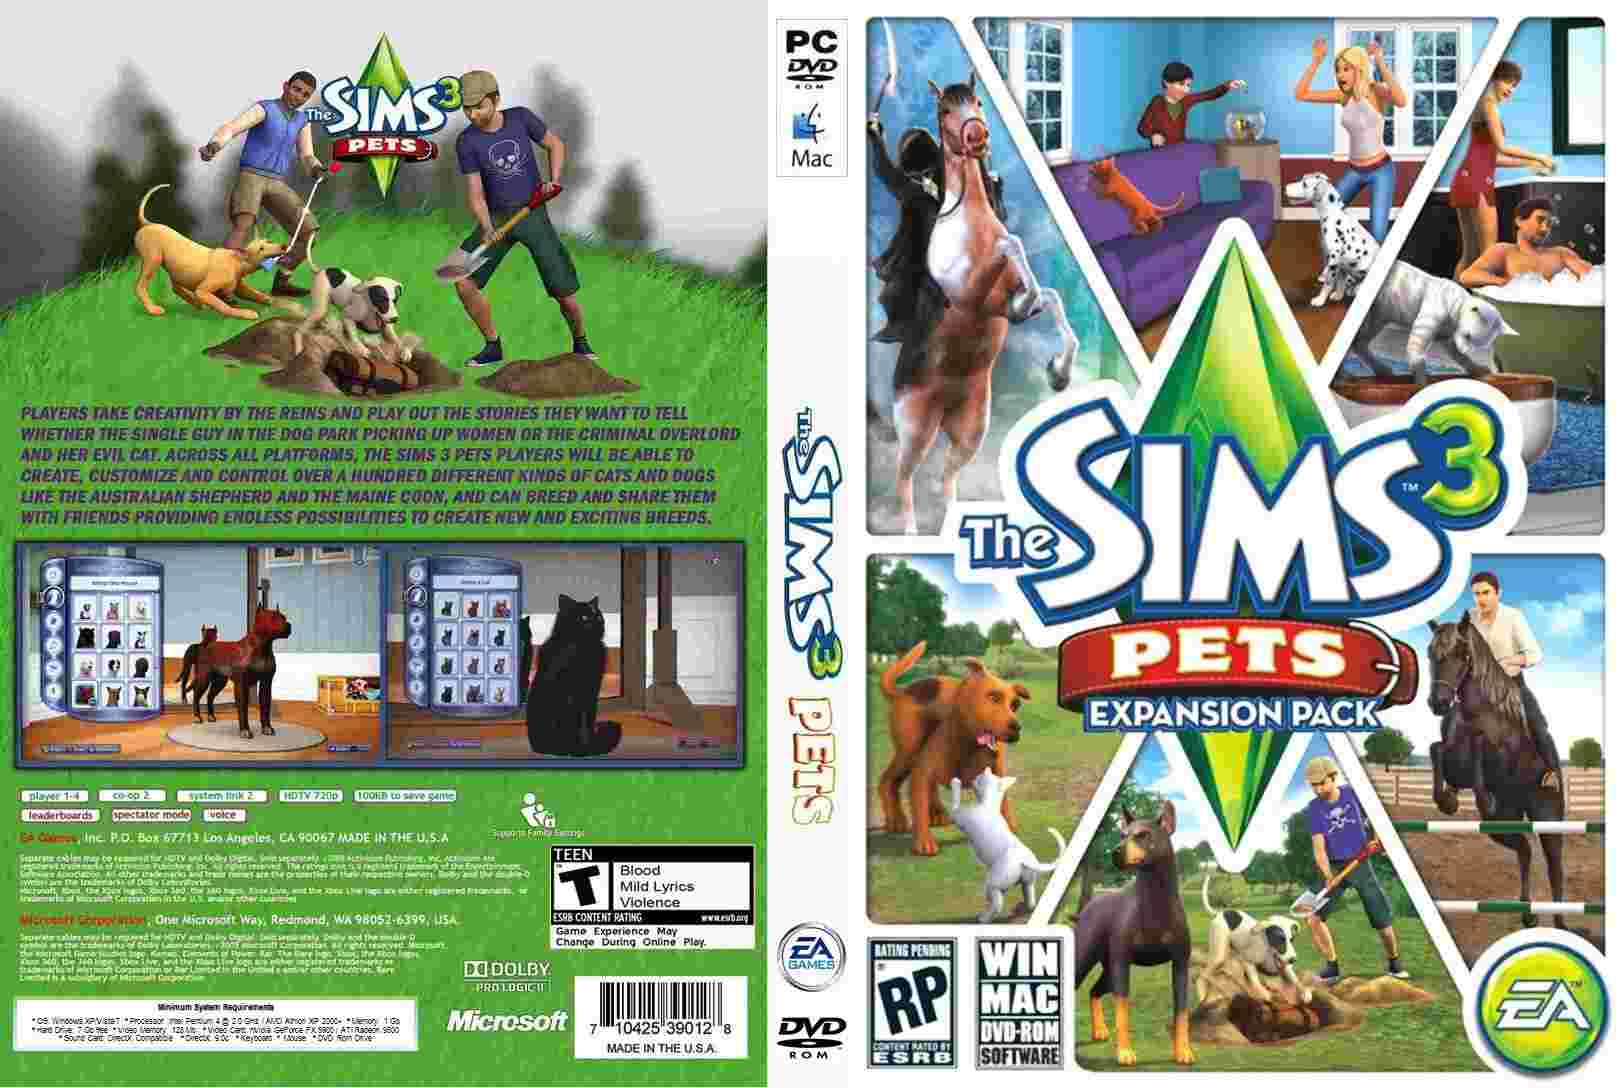 The sims 3 pets cheats xbox 360 - 3